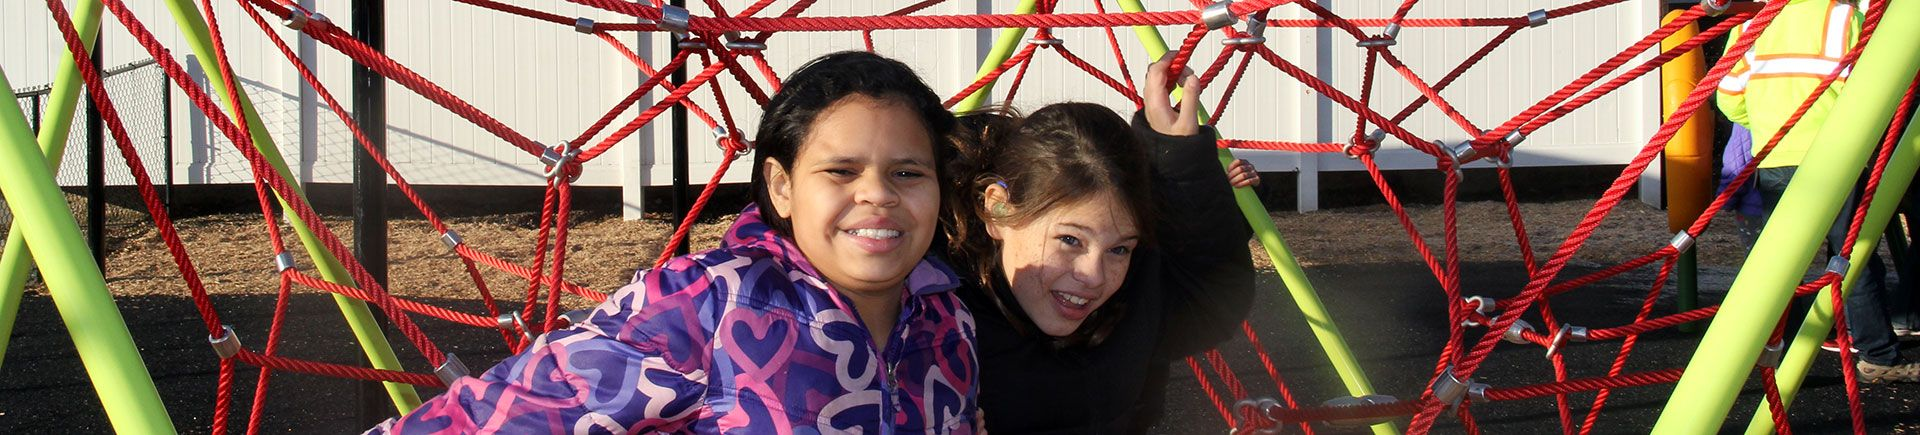 Students in the playground